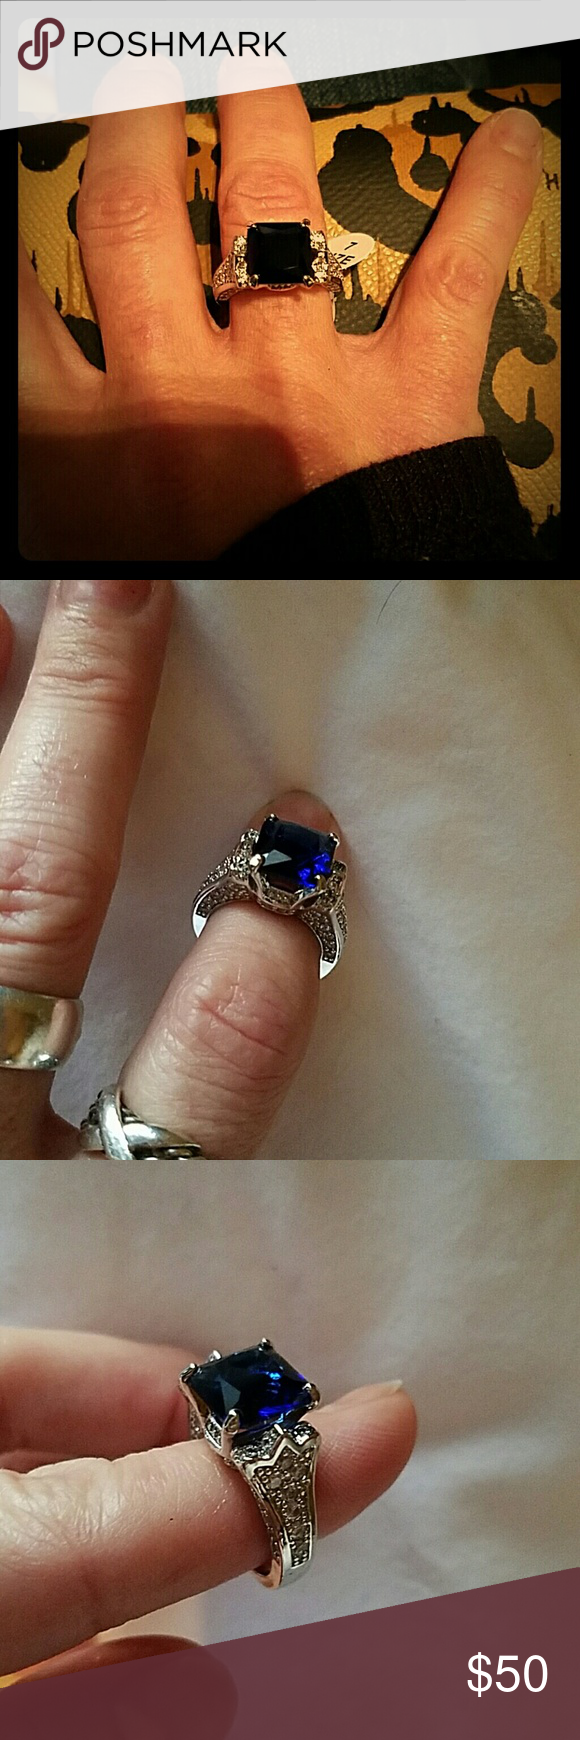 Blue Sapphire sterling silver Ring 925 Blue Sapphire sterling silver Ring Accessories